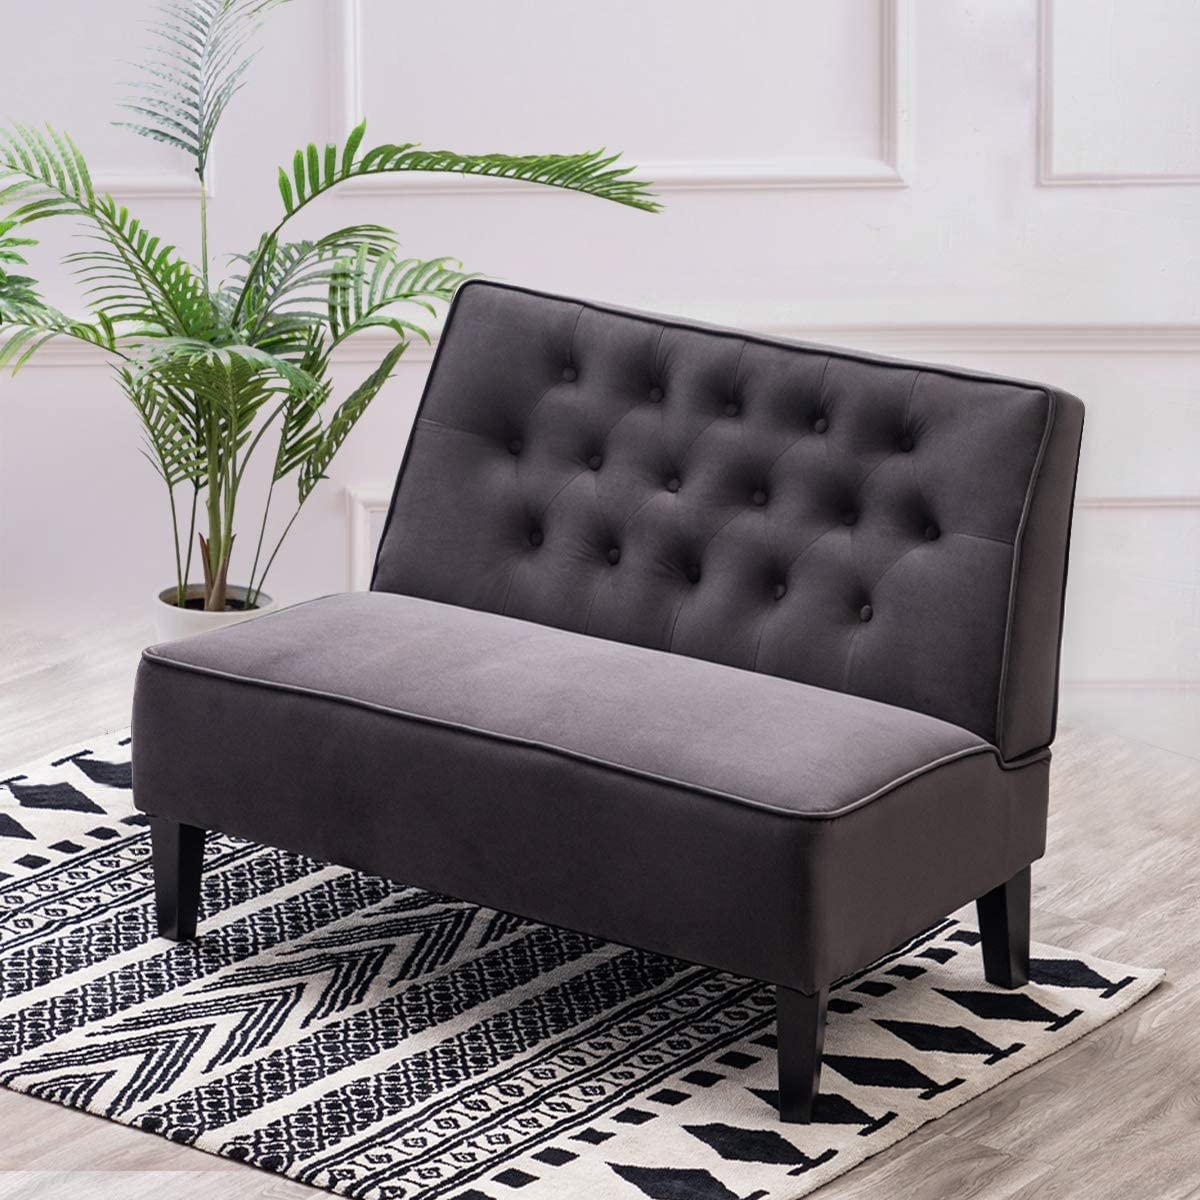 Alunaune Upholstered Settee Loveseat Bench